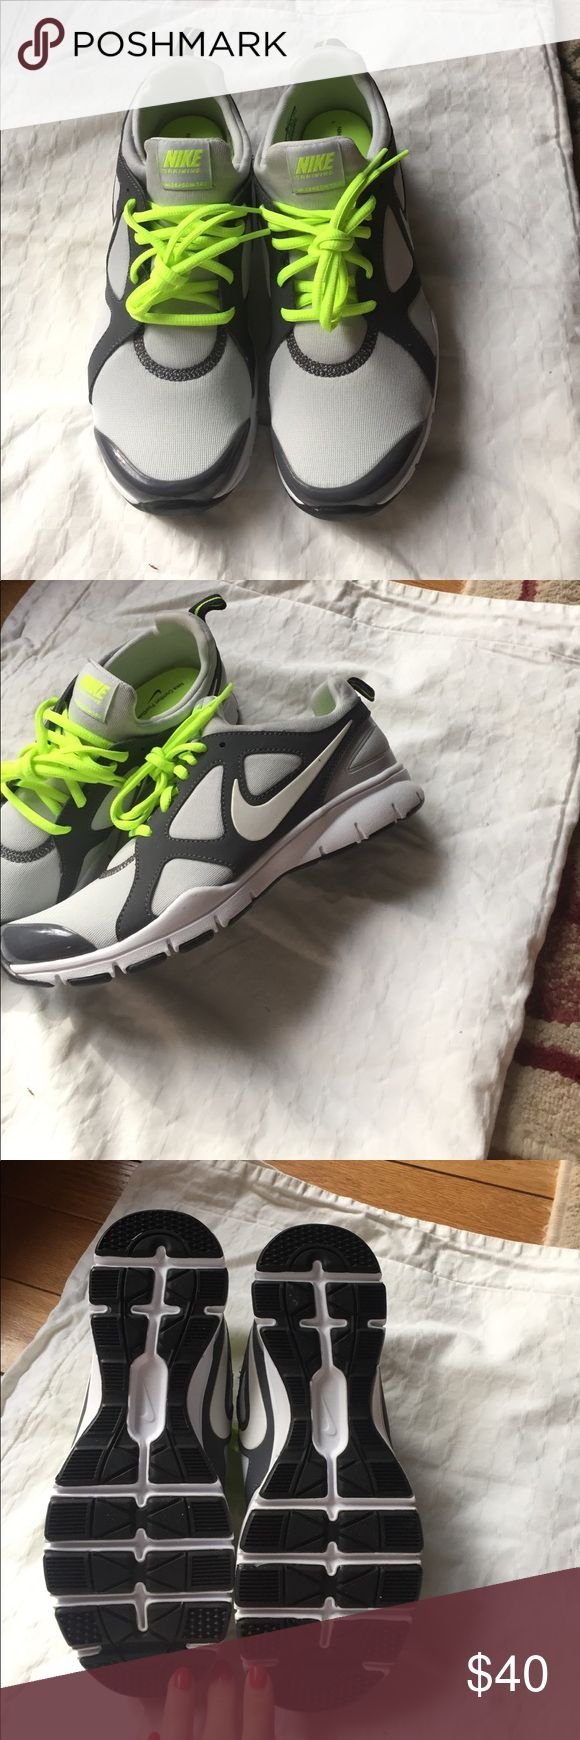 Nike training shoes Nike training shoes. New never worn. Grey with neon laces. Memory foam soles. One piece design tag does not move. Super comfy fit slightly larger than a 7.5 I believe. Nike Shoes Athletic Shoes